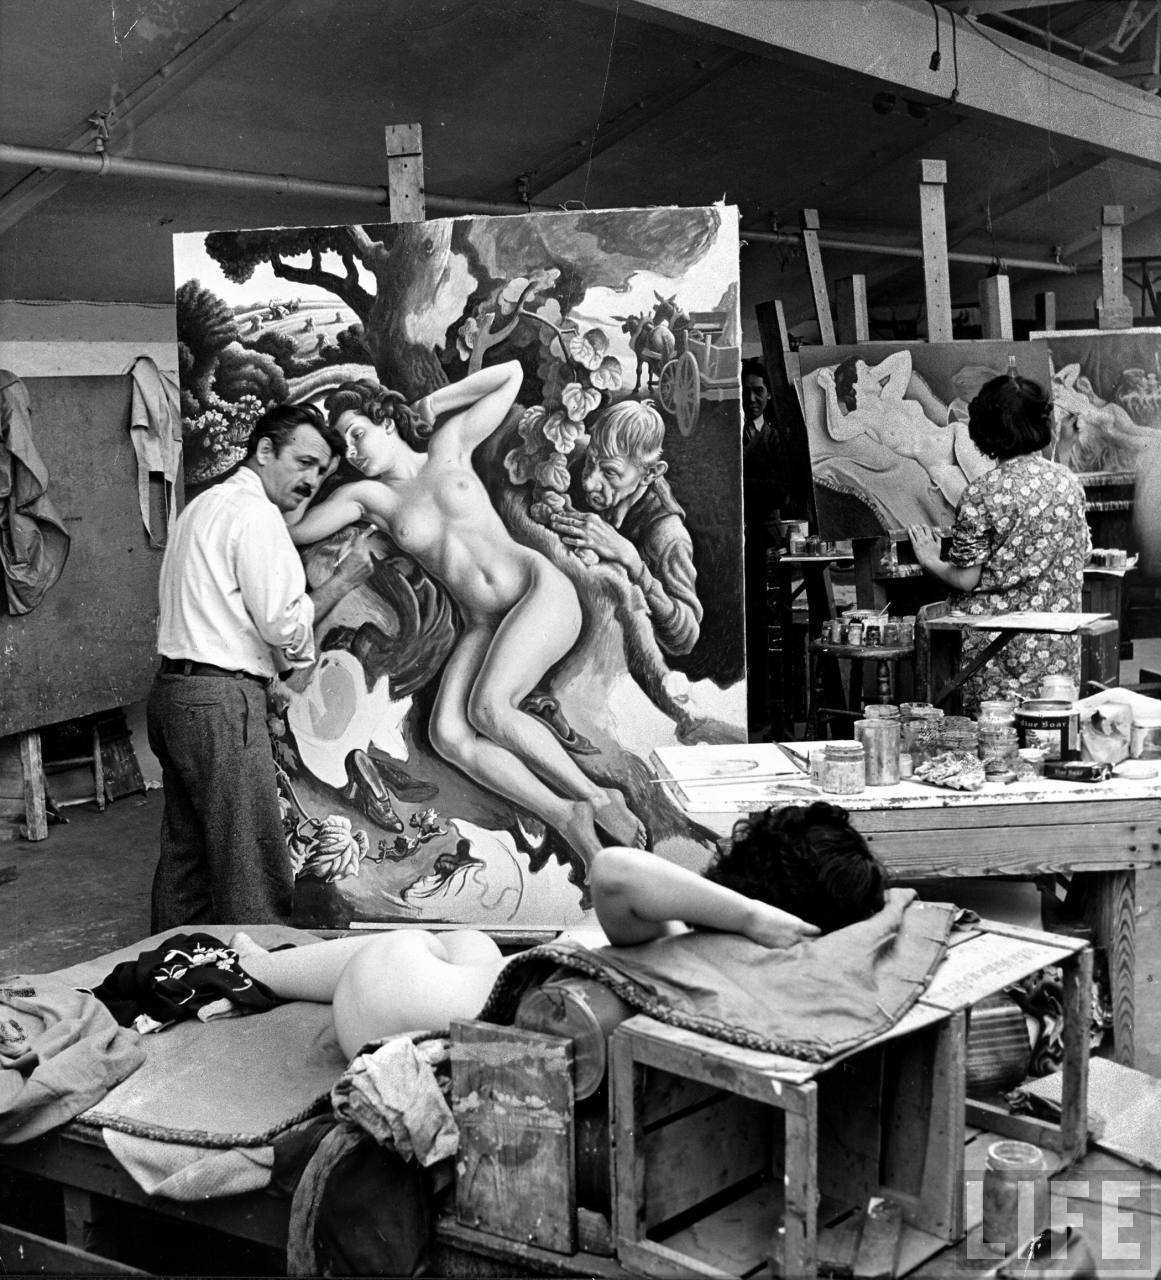 Painted clay model made by artist Thomas Hart Benton to serve as a three dimensional guide for his painting Rape of Persephone.